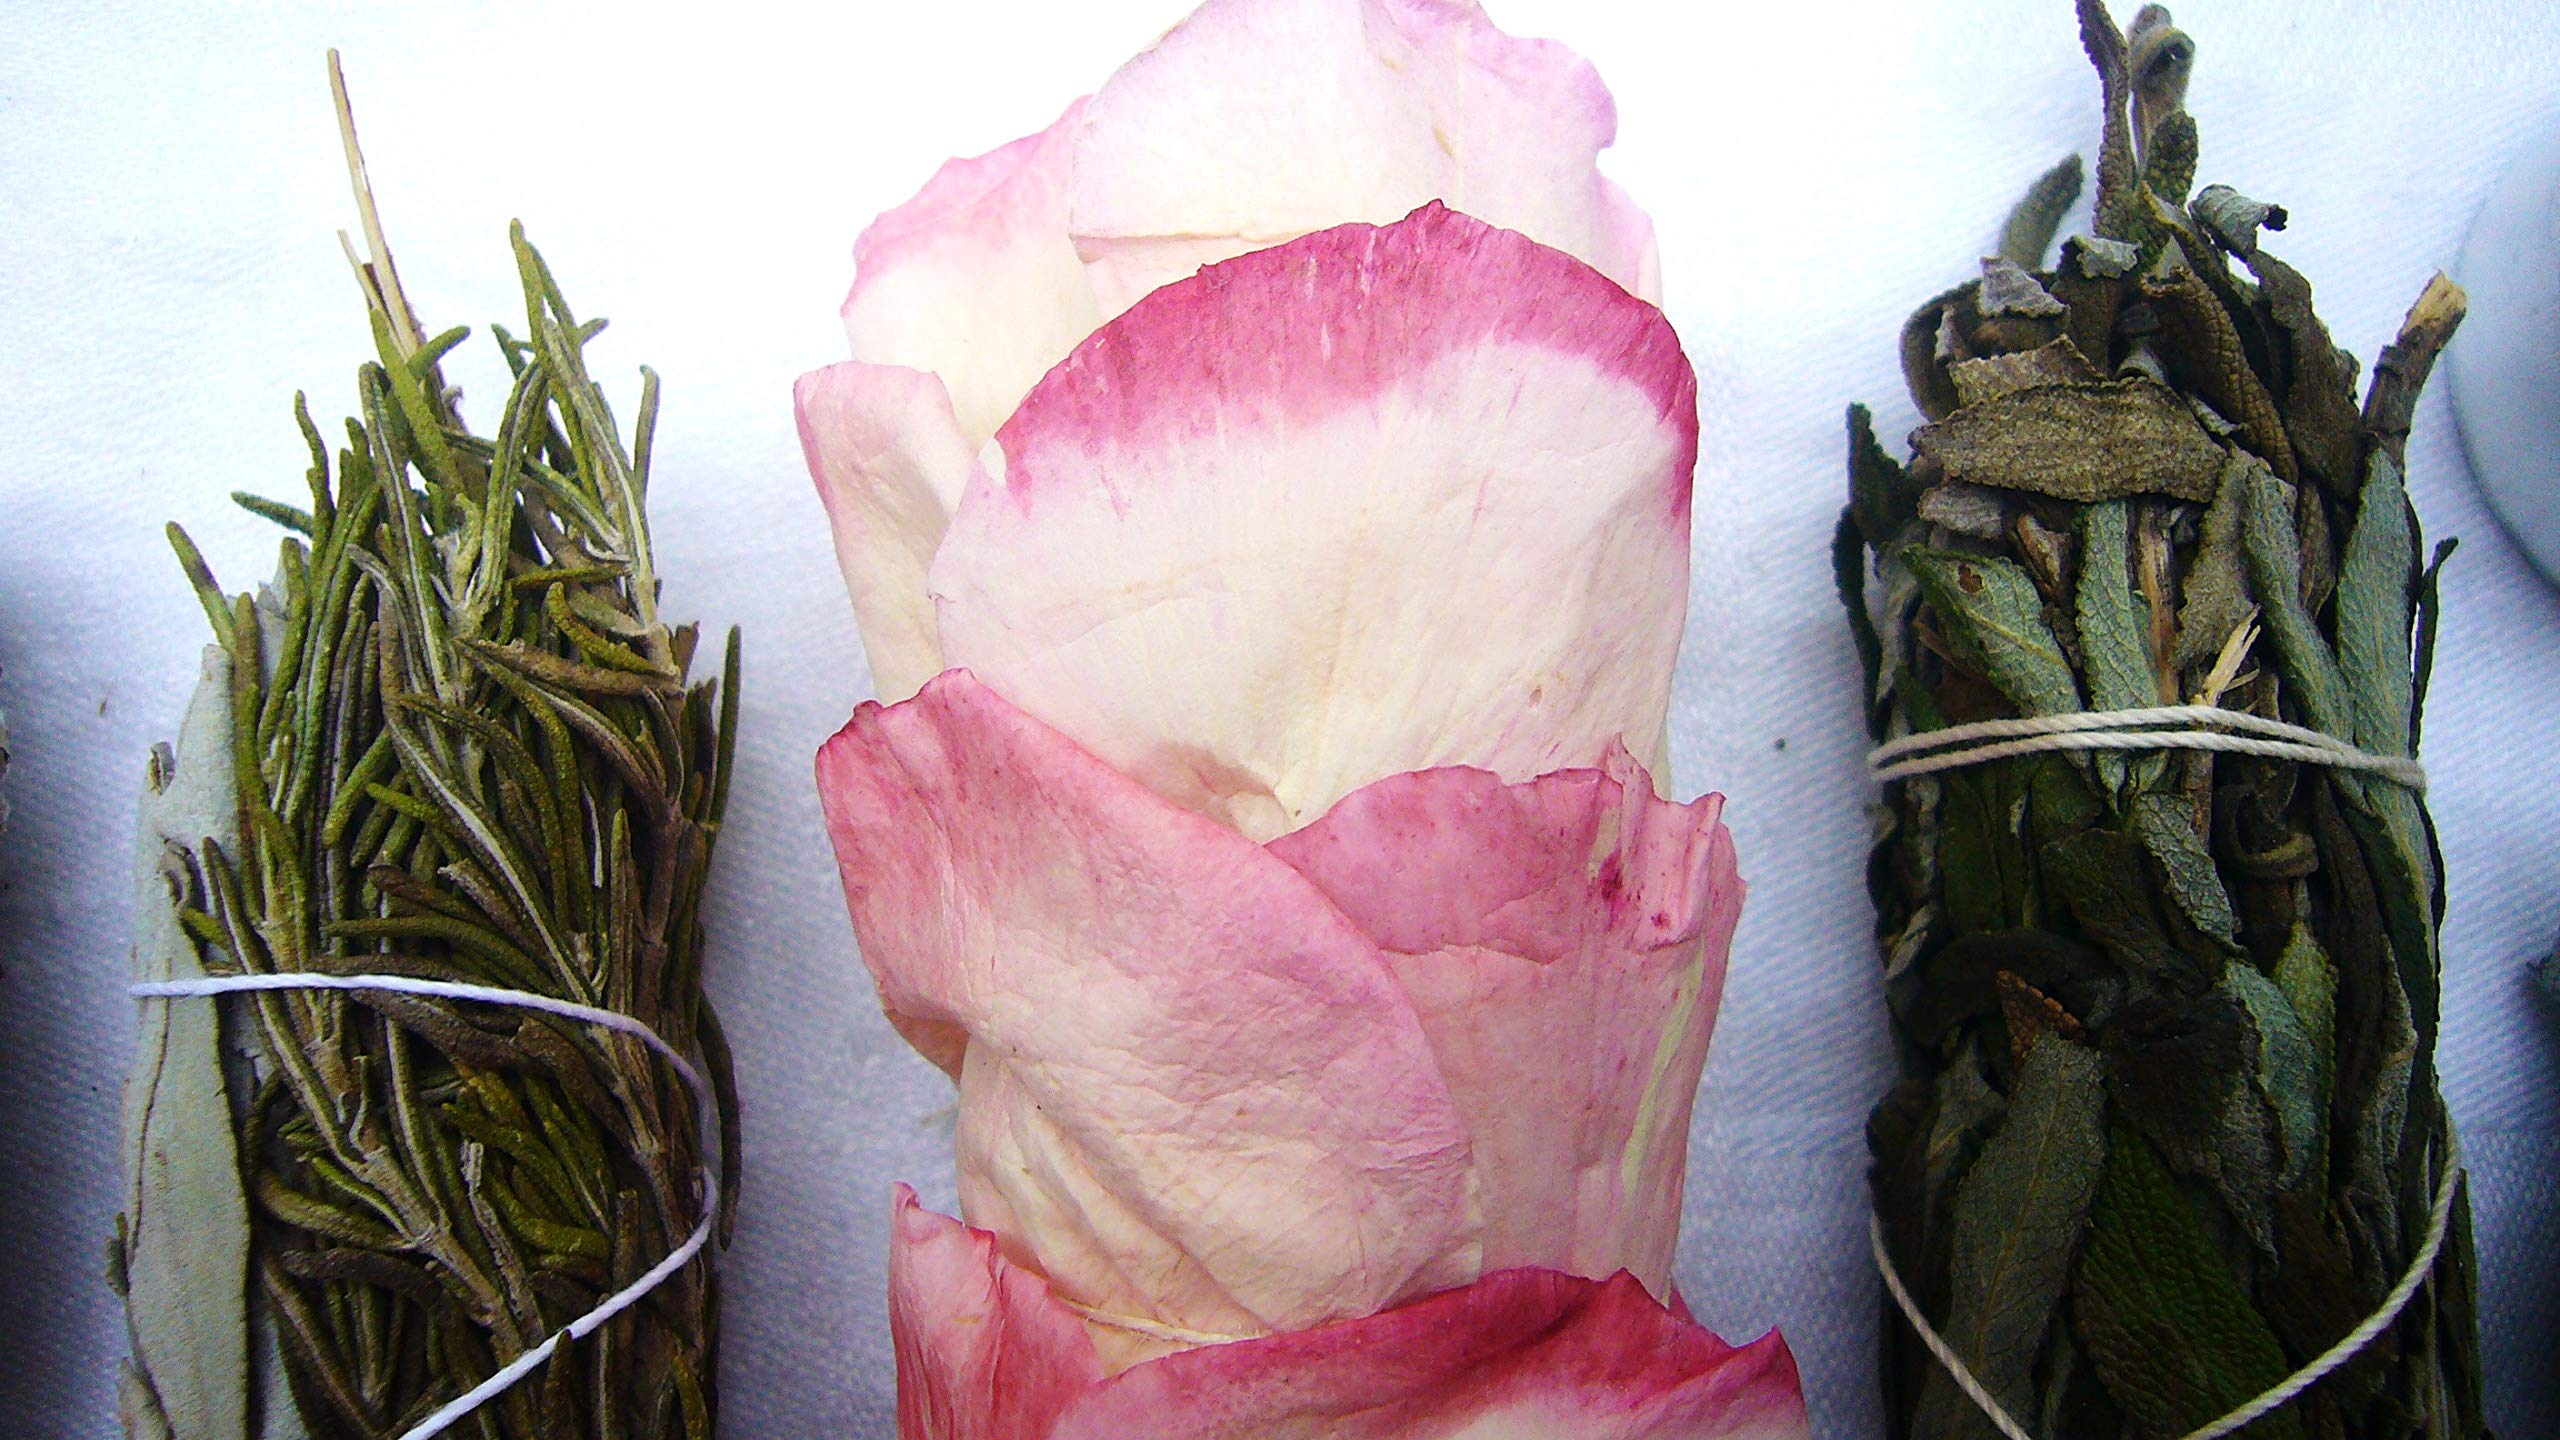 L'AMOUR yes! Luxury Smudge Kit | Rose White Sage, Rosemary, Lavender Smudge Stick, Yerba Santa & Blue Sage, White Sage, Palo Santo, Crystal Candle | Home Cleansing, Blessing, Manifesting, Rituals by L'AMOUR yes! (Image #6)